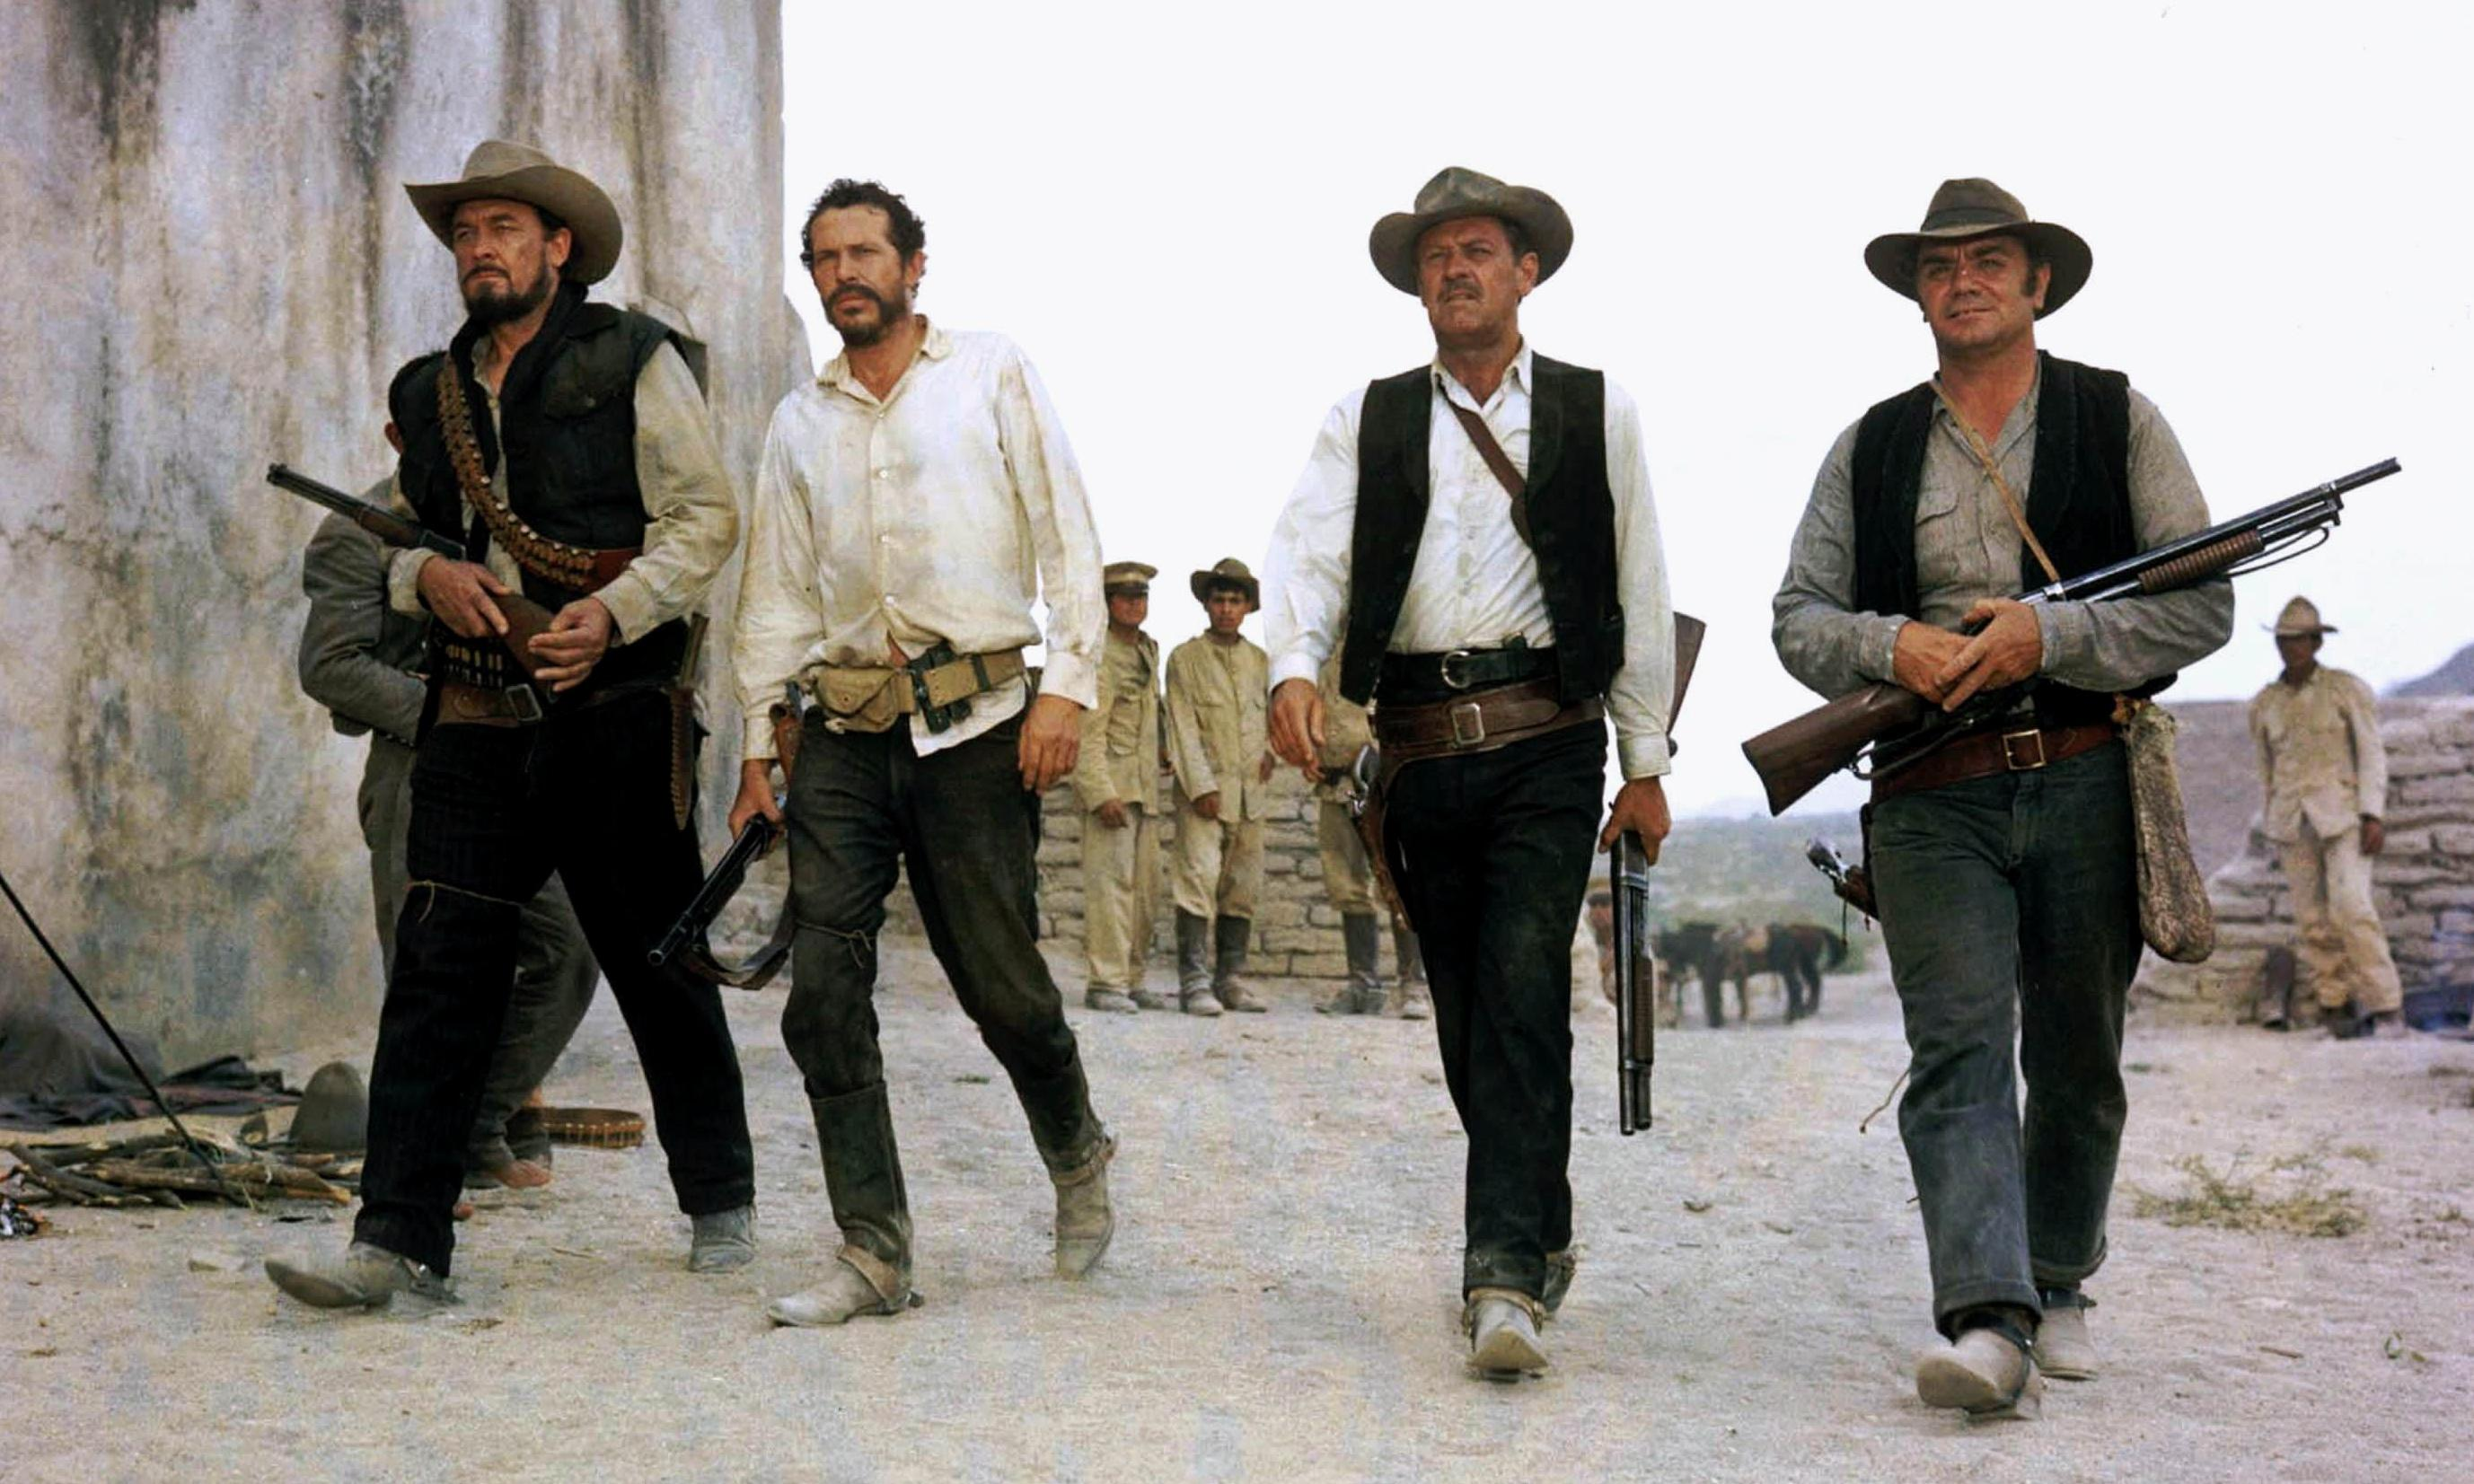 The Wild Bunch at 50: the enduring nihilism of Sam Peckinpah's western